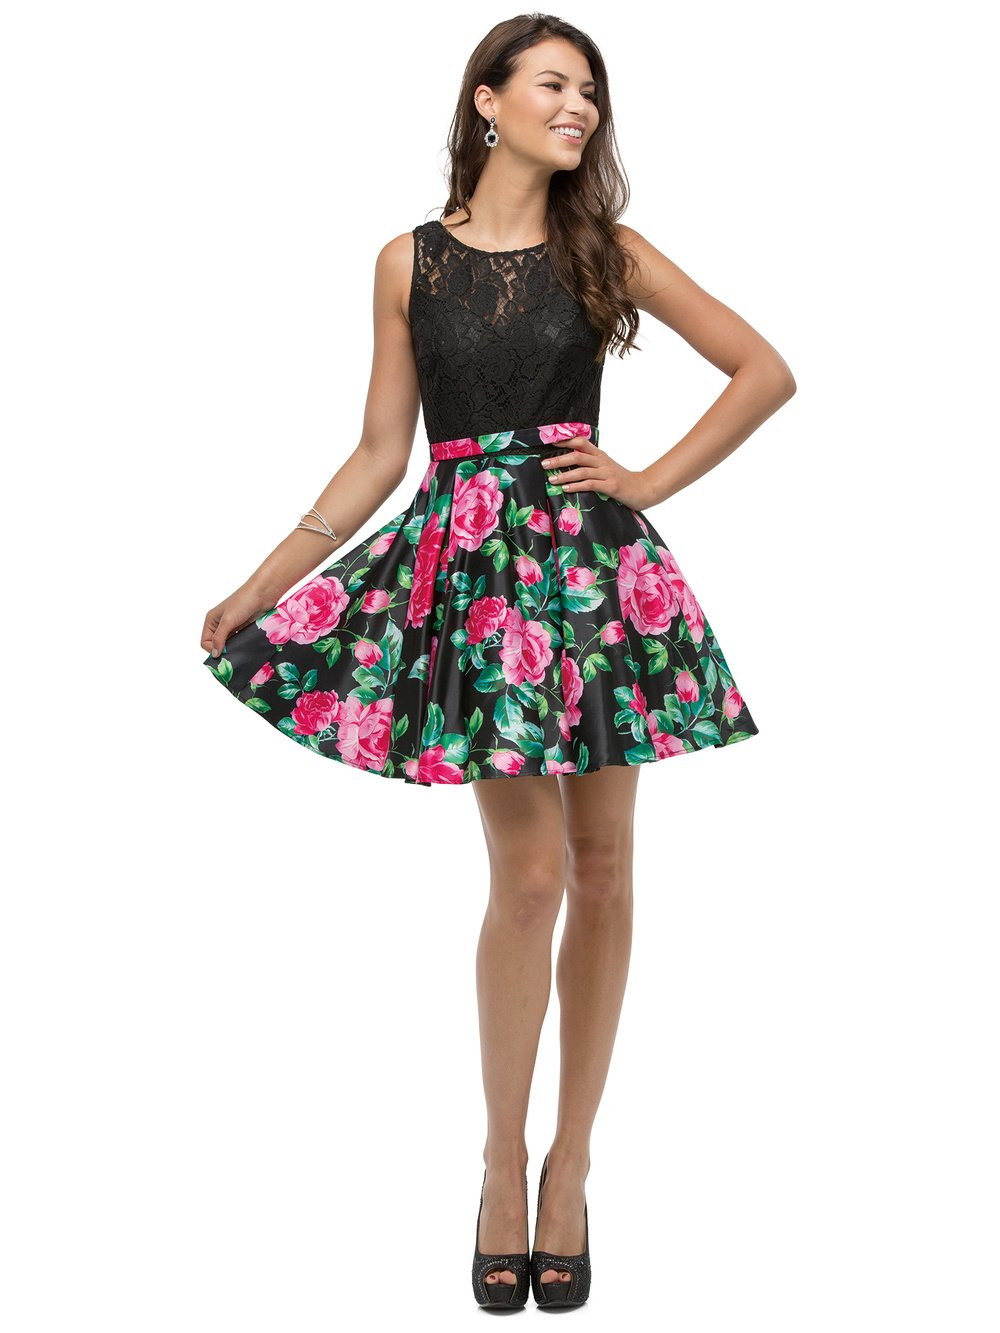 SHORT LACE TOP WITH FLORAL PRINT SKIRT DRESS